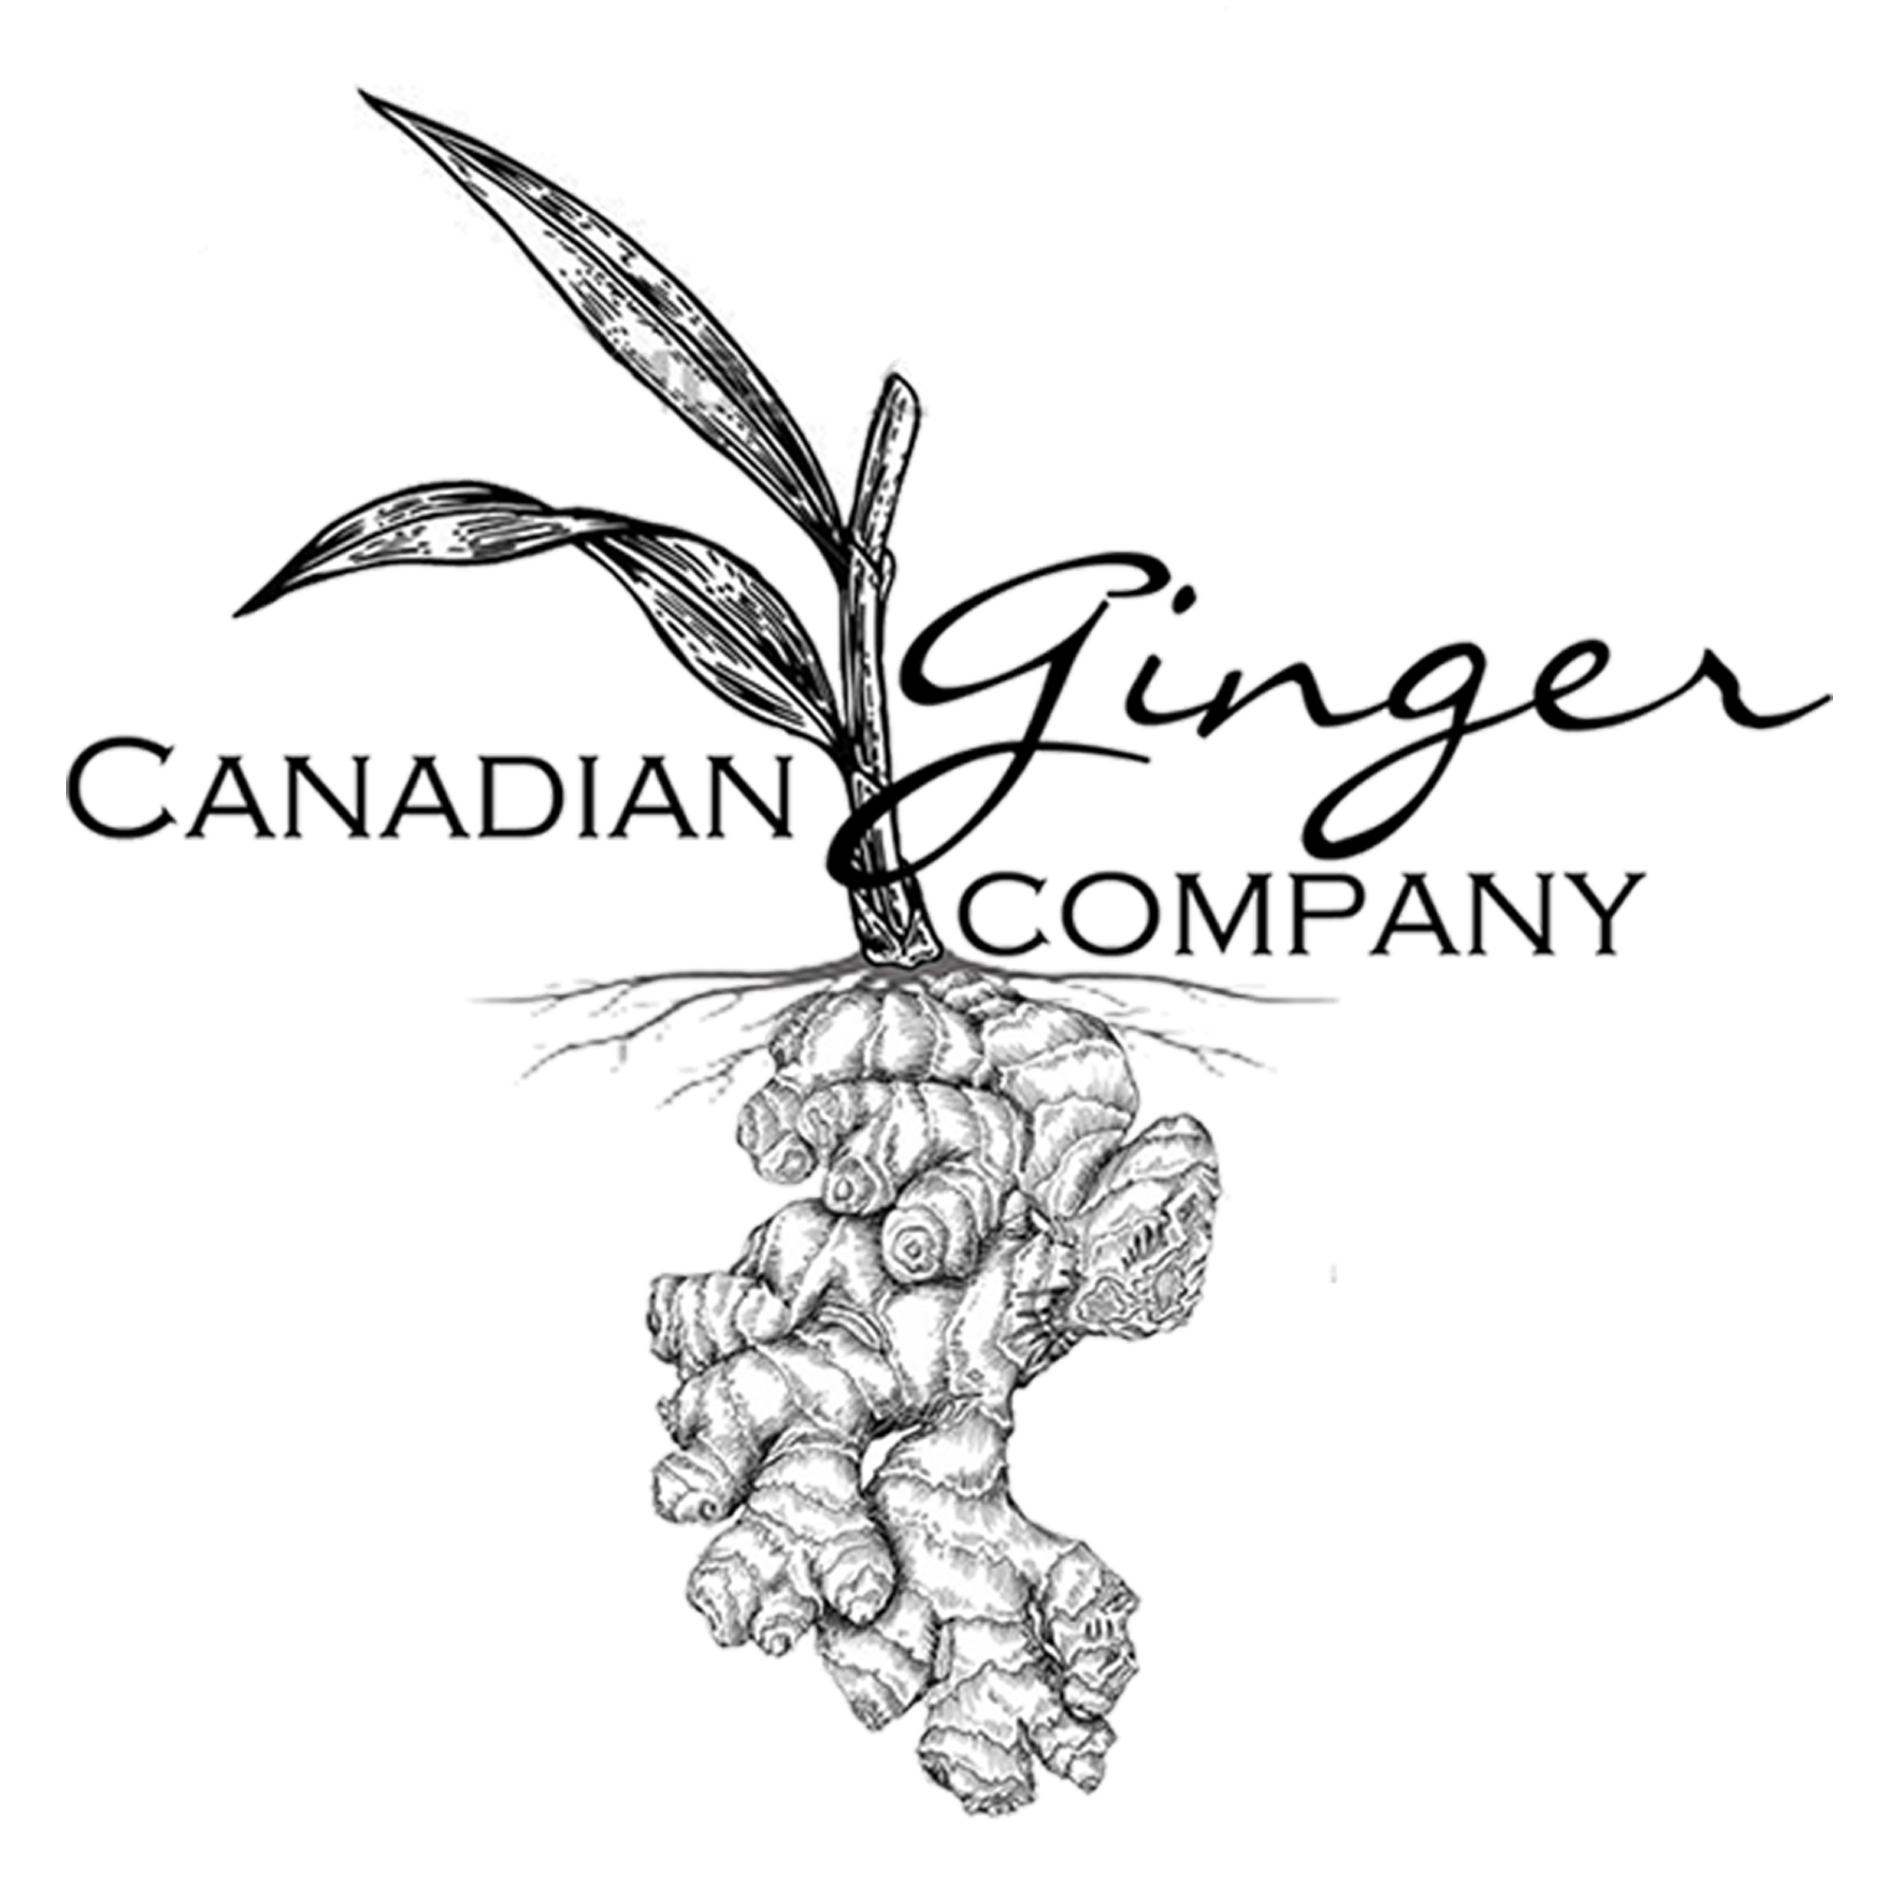 The Canadian Ginger Co.